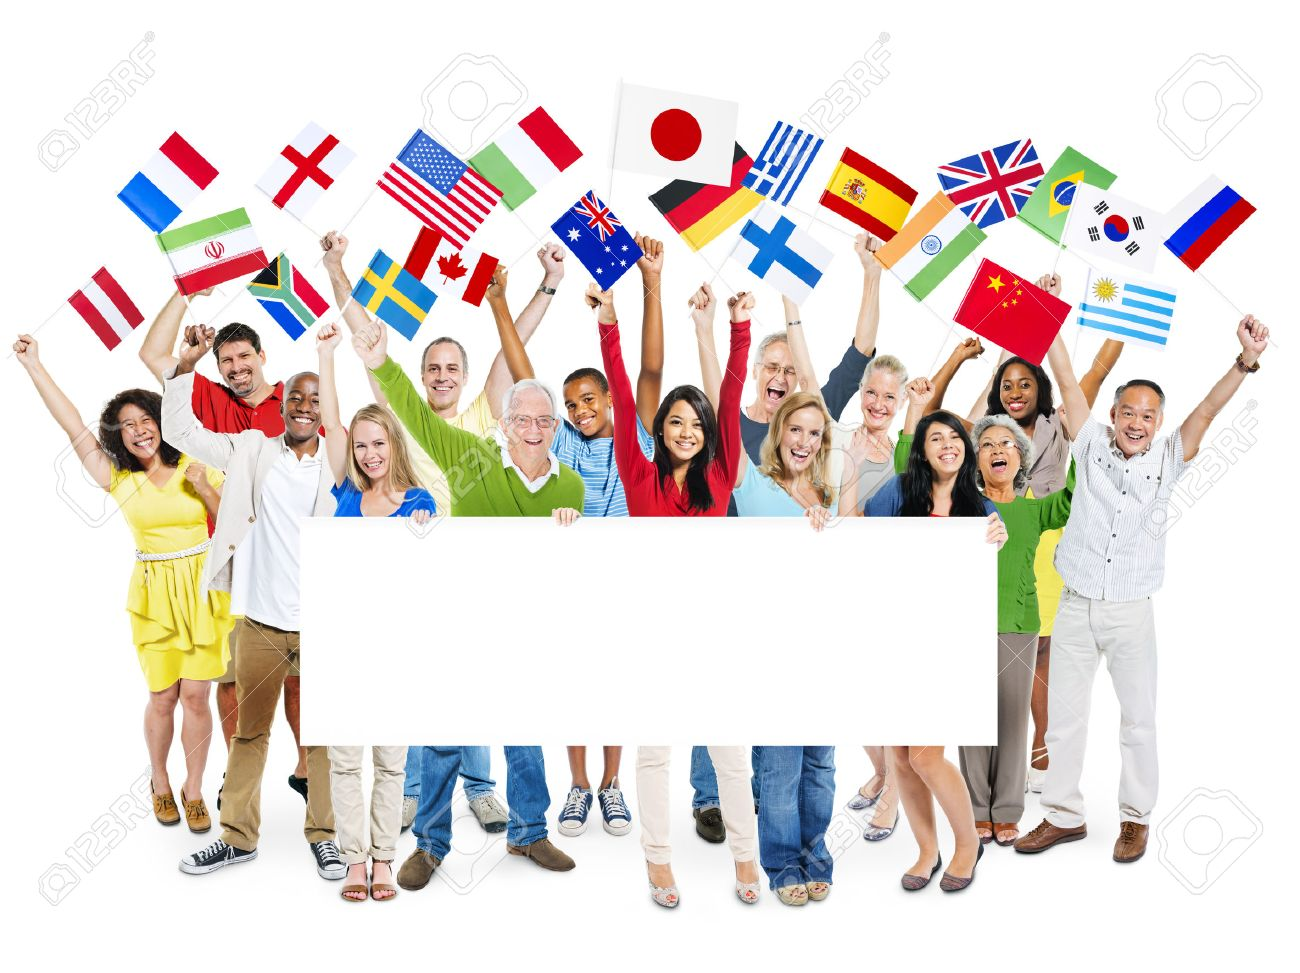 Large group of diverse cheerful multi-ethnic casual people celebrating while holding flags and a white placard - 28911768